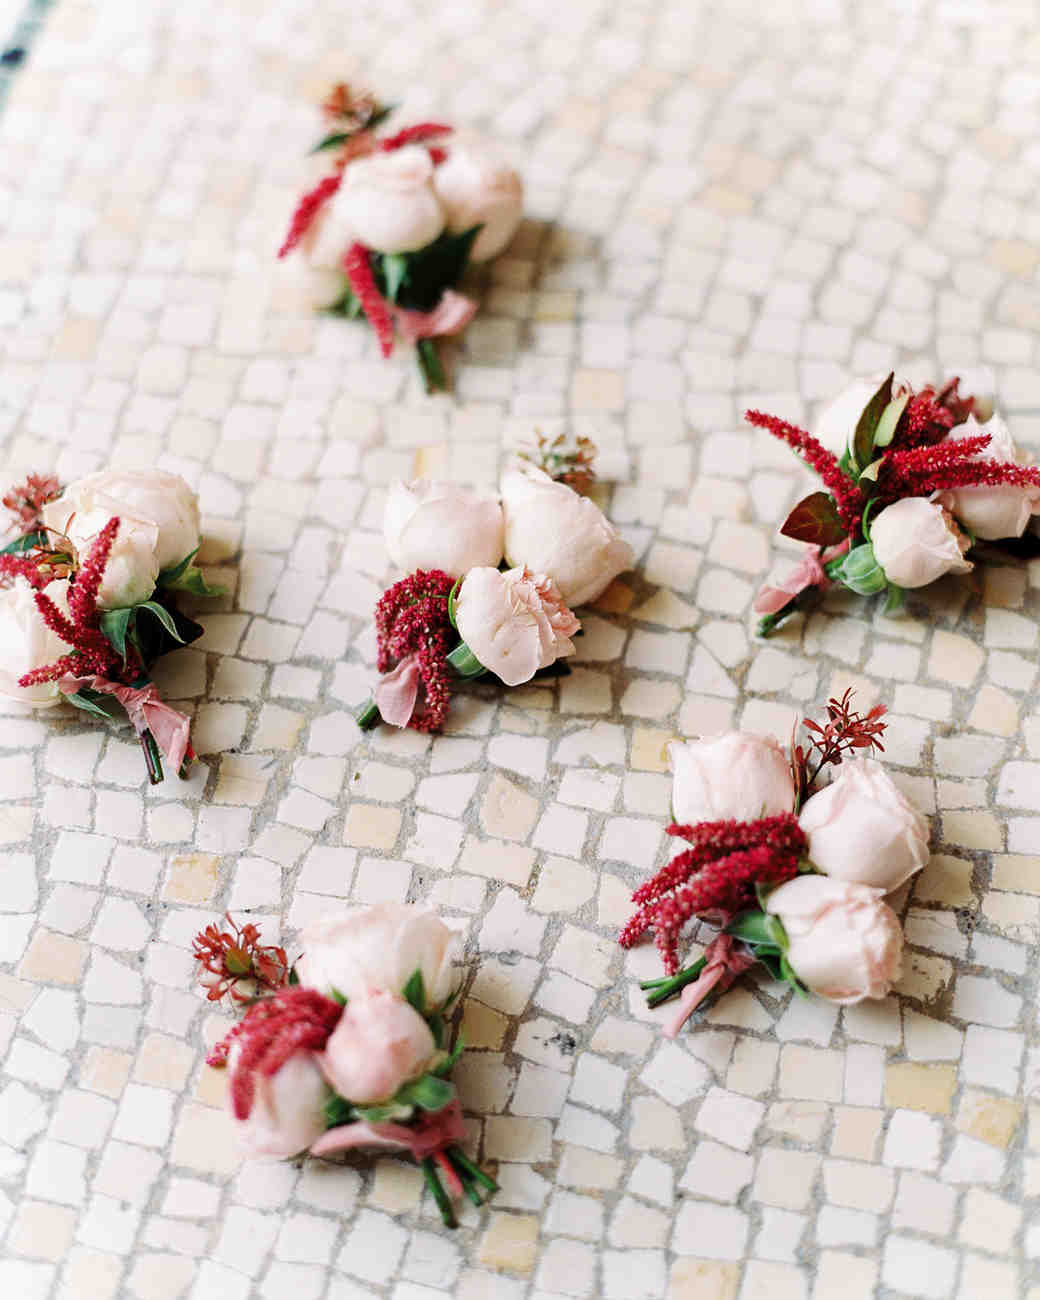 red and white floral boutonnieres with greenery accents